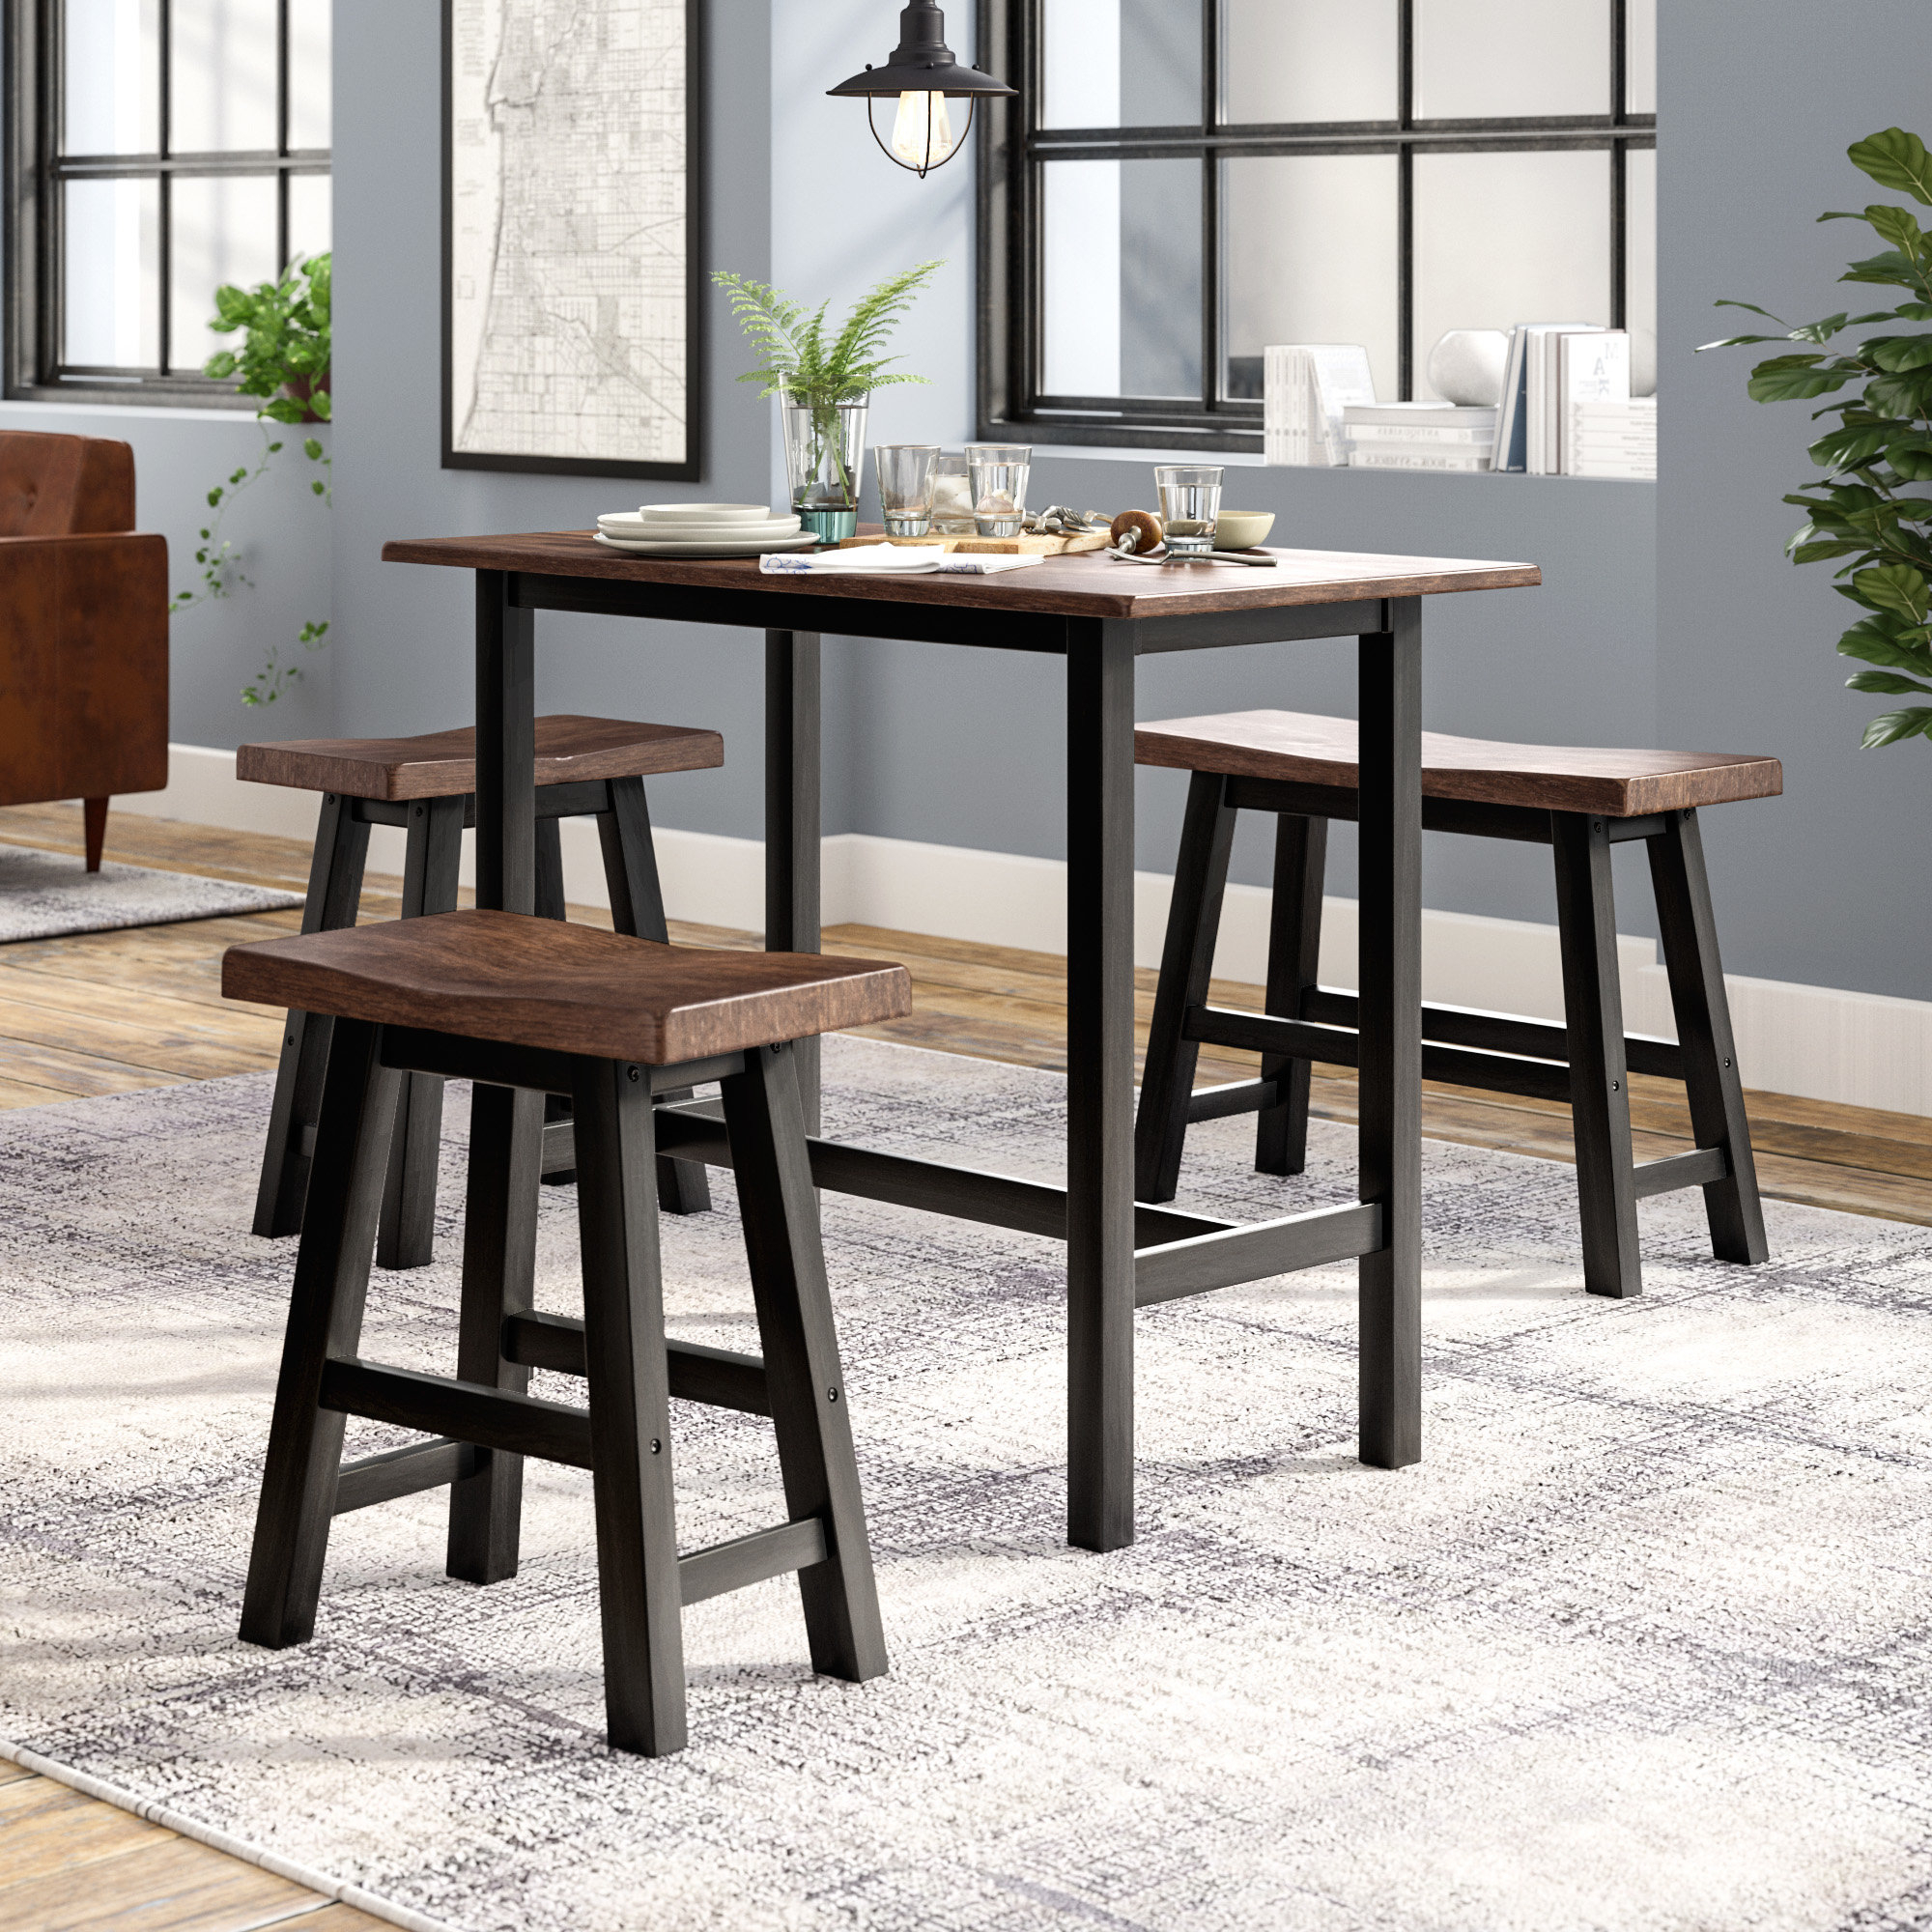 Wayfair Intended For Rarick 5 Piece Solid Wood Dining Sets (Set Of 5) (View 19 of 20)